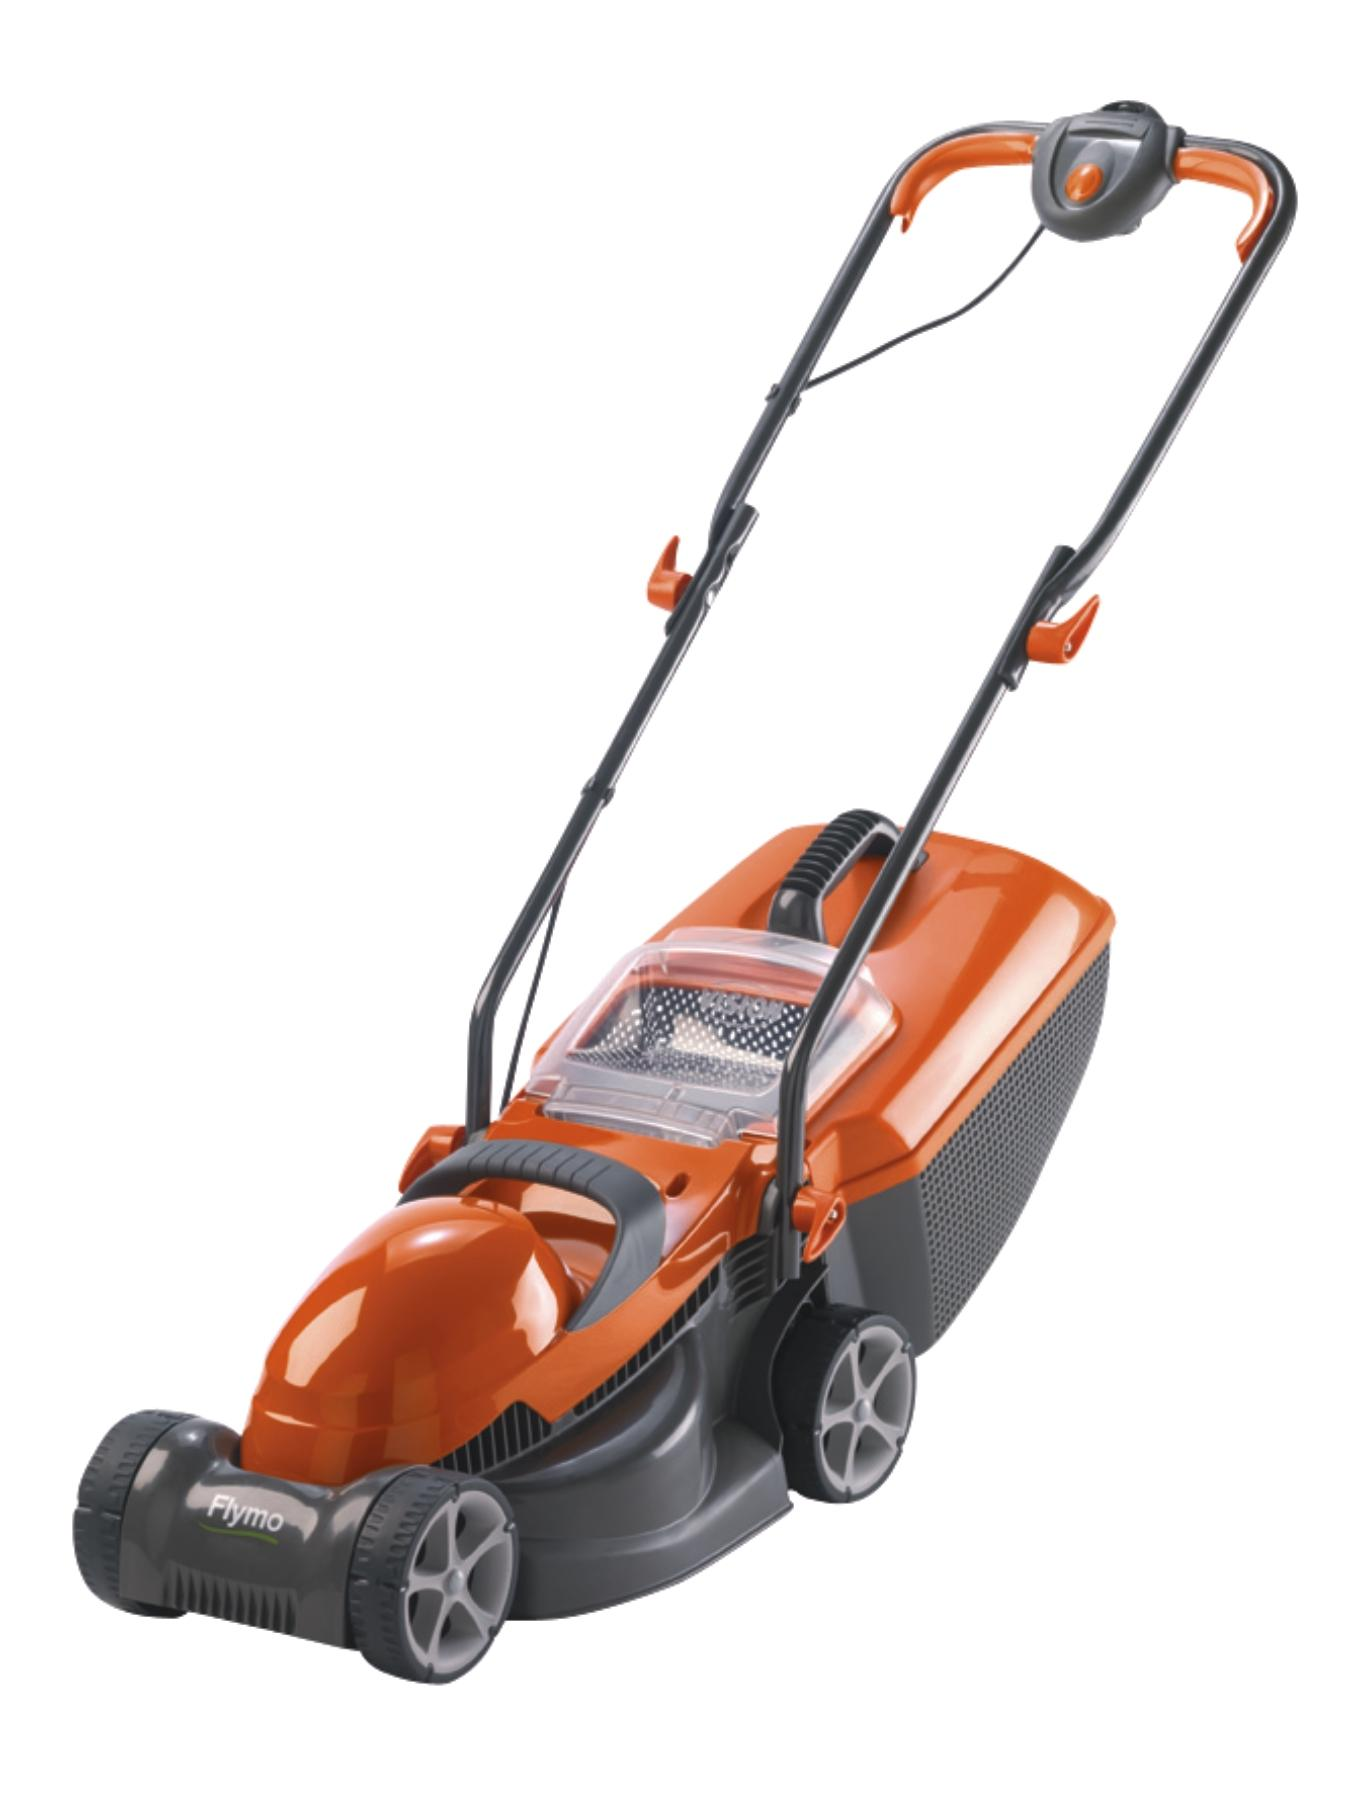 Buy Cheap Flymo Hover Lawn Mower Compare Lawn Mowers